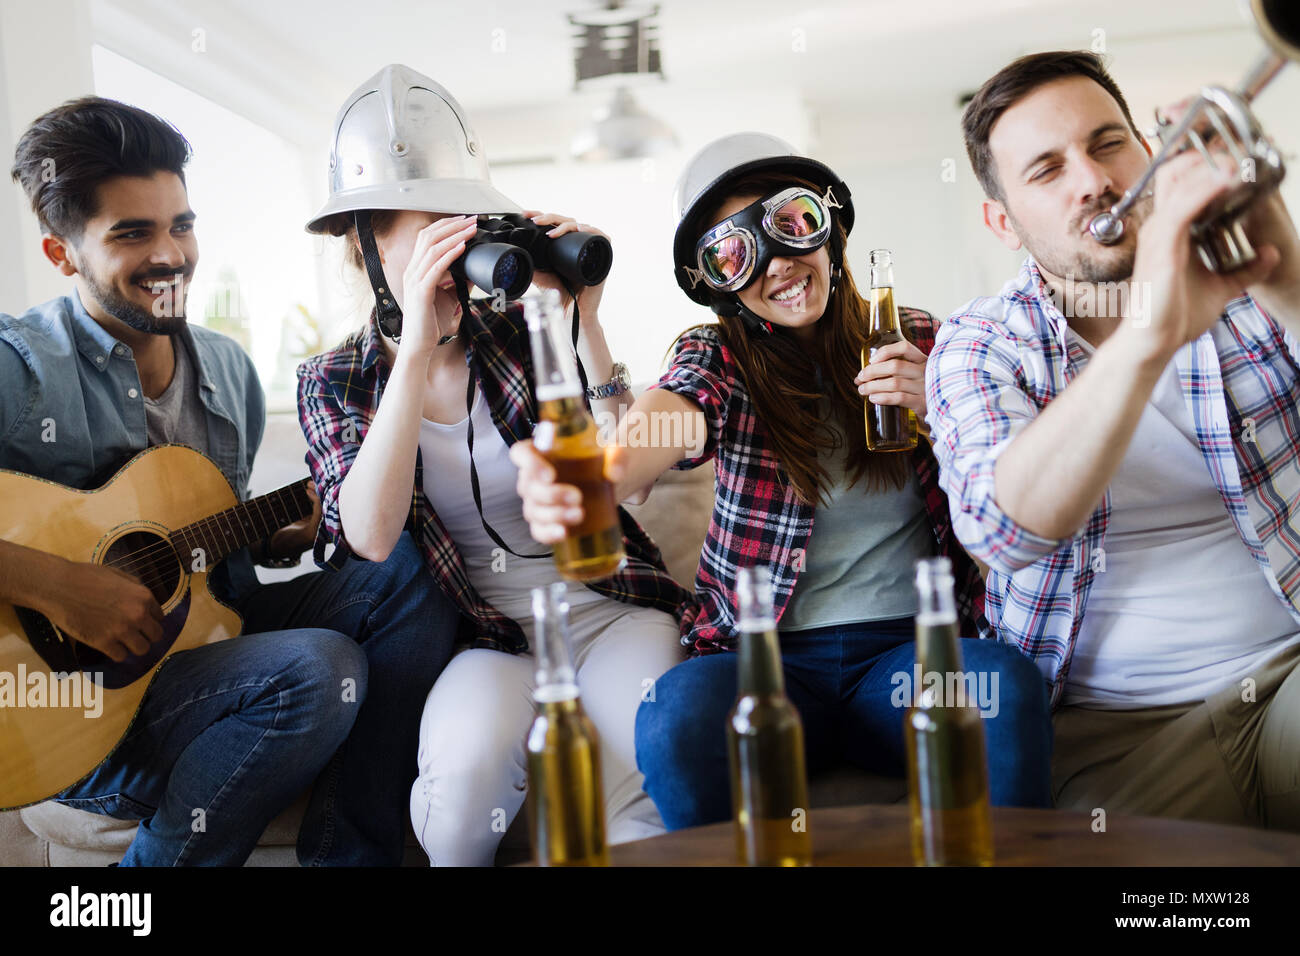 Group of happy young friends having fun and drinking beer Stock Photo